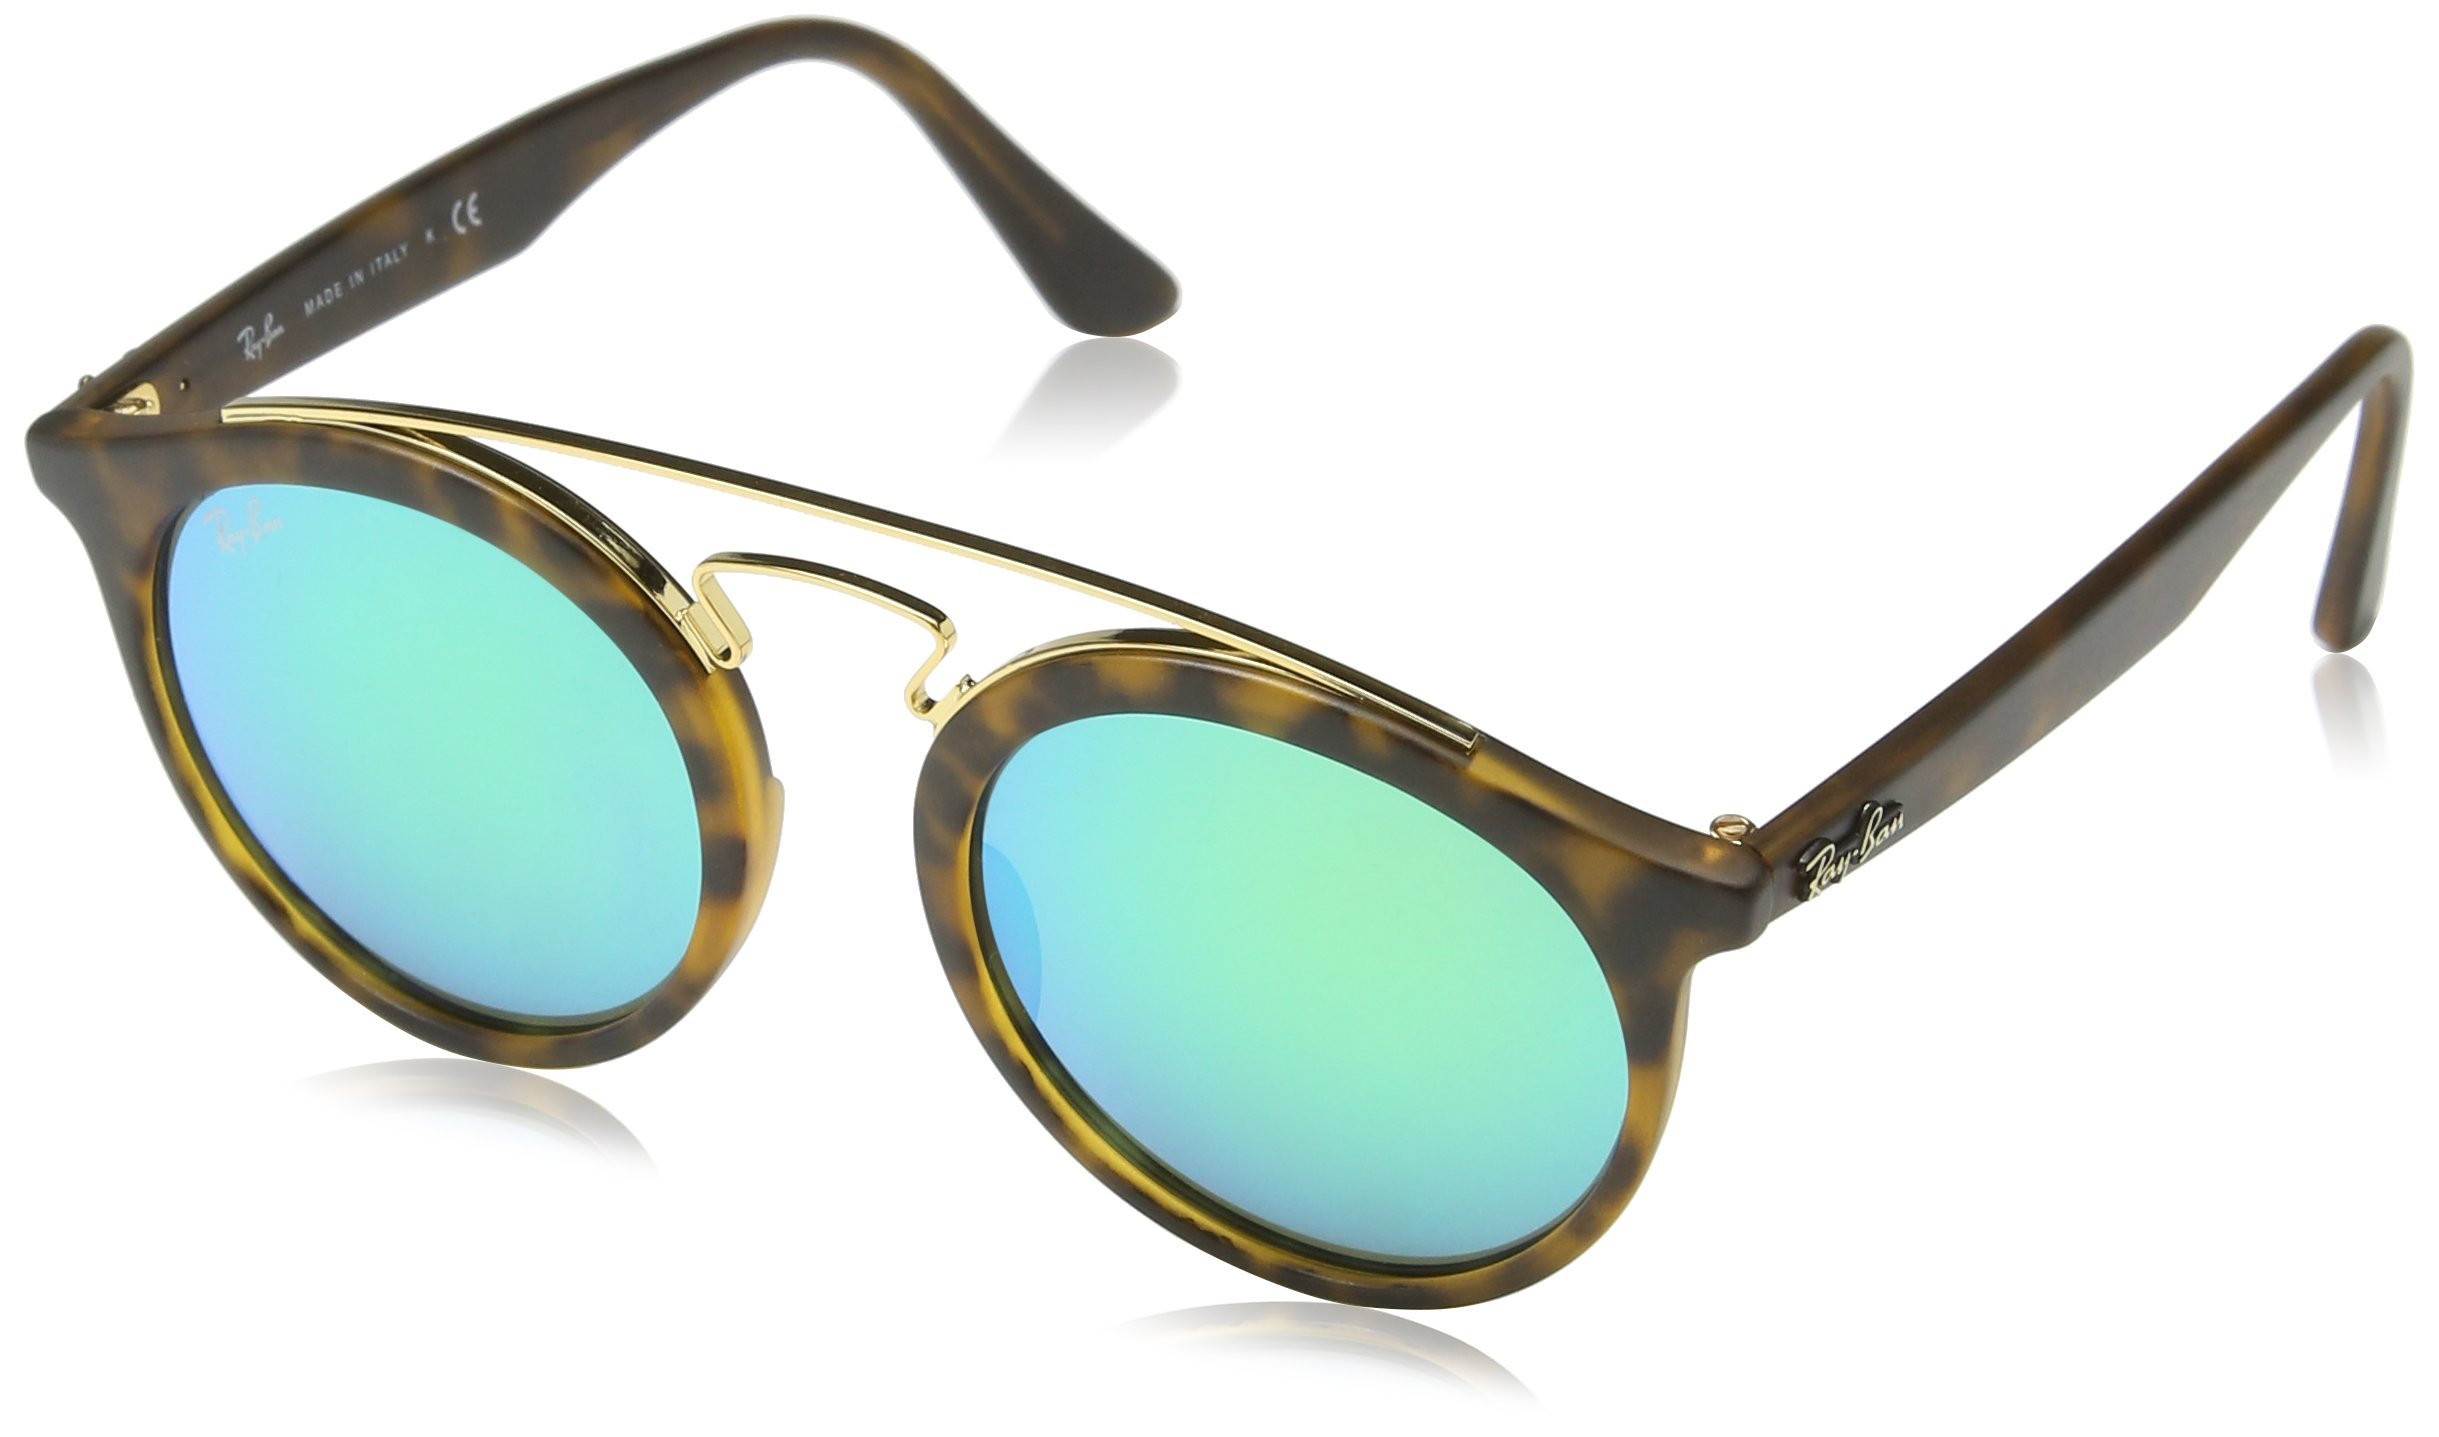 Ray-Ban Gatsby I Sunglasses (RB4256) Tortoise/Green Plastic - Non-Polarized - 49mm by Ray-Ban